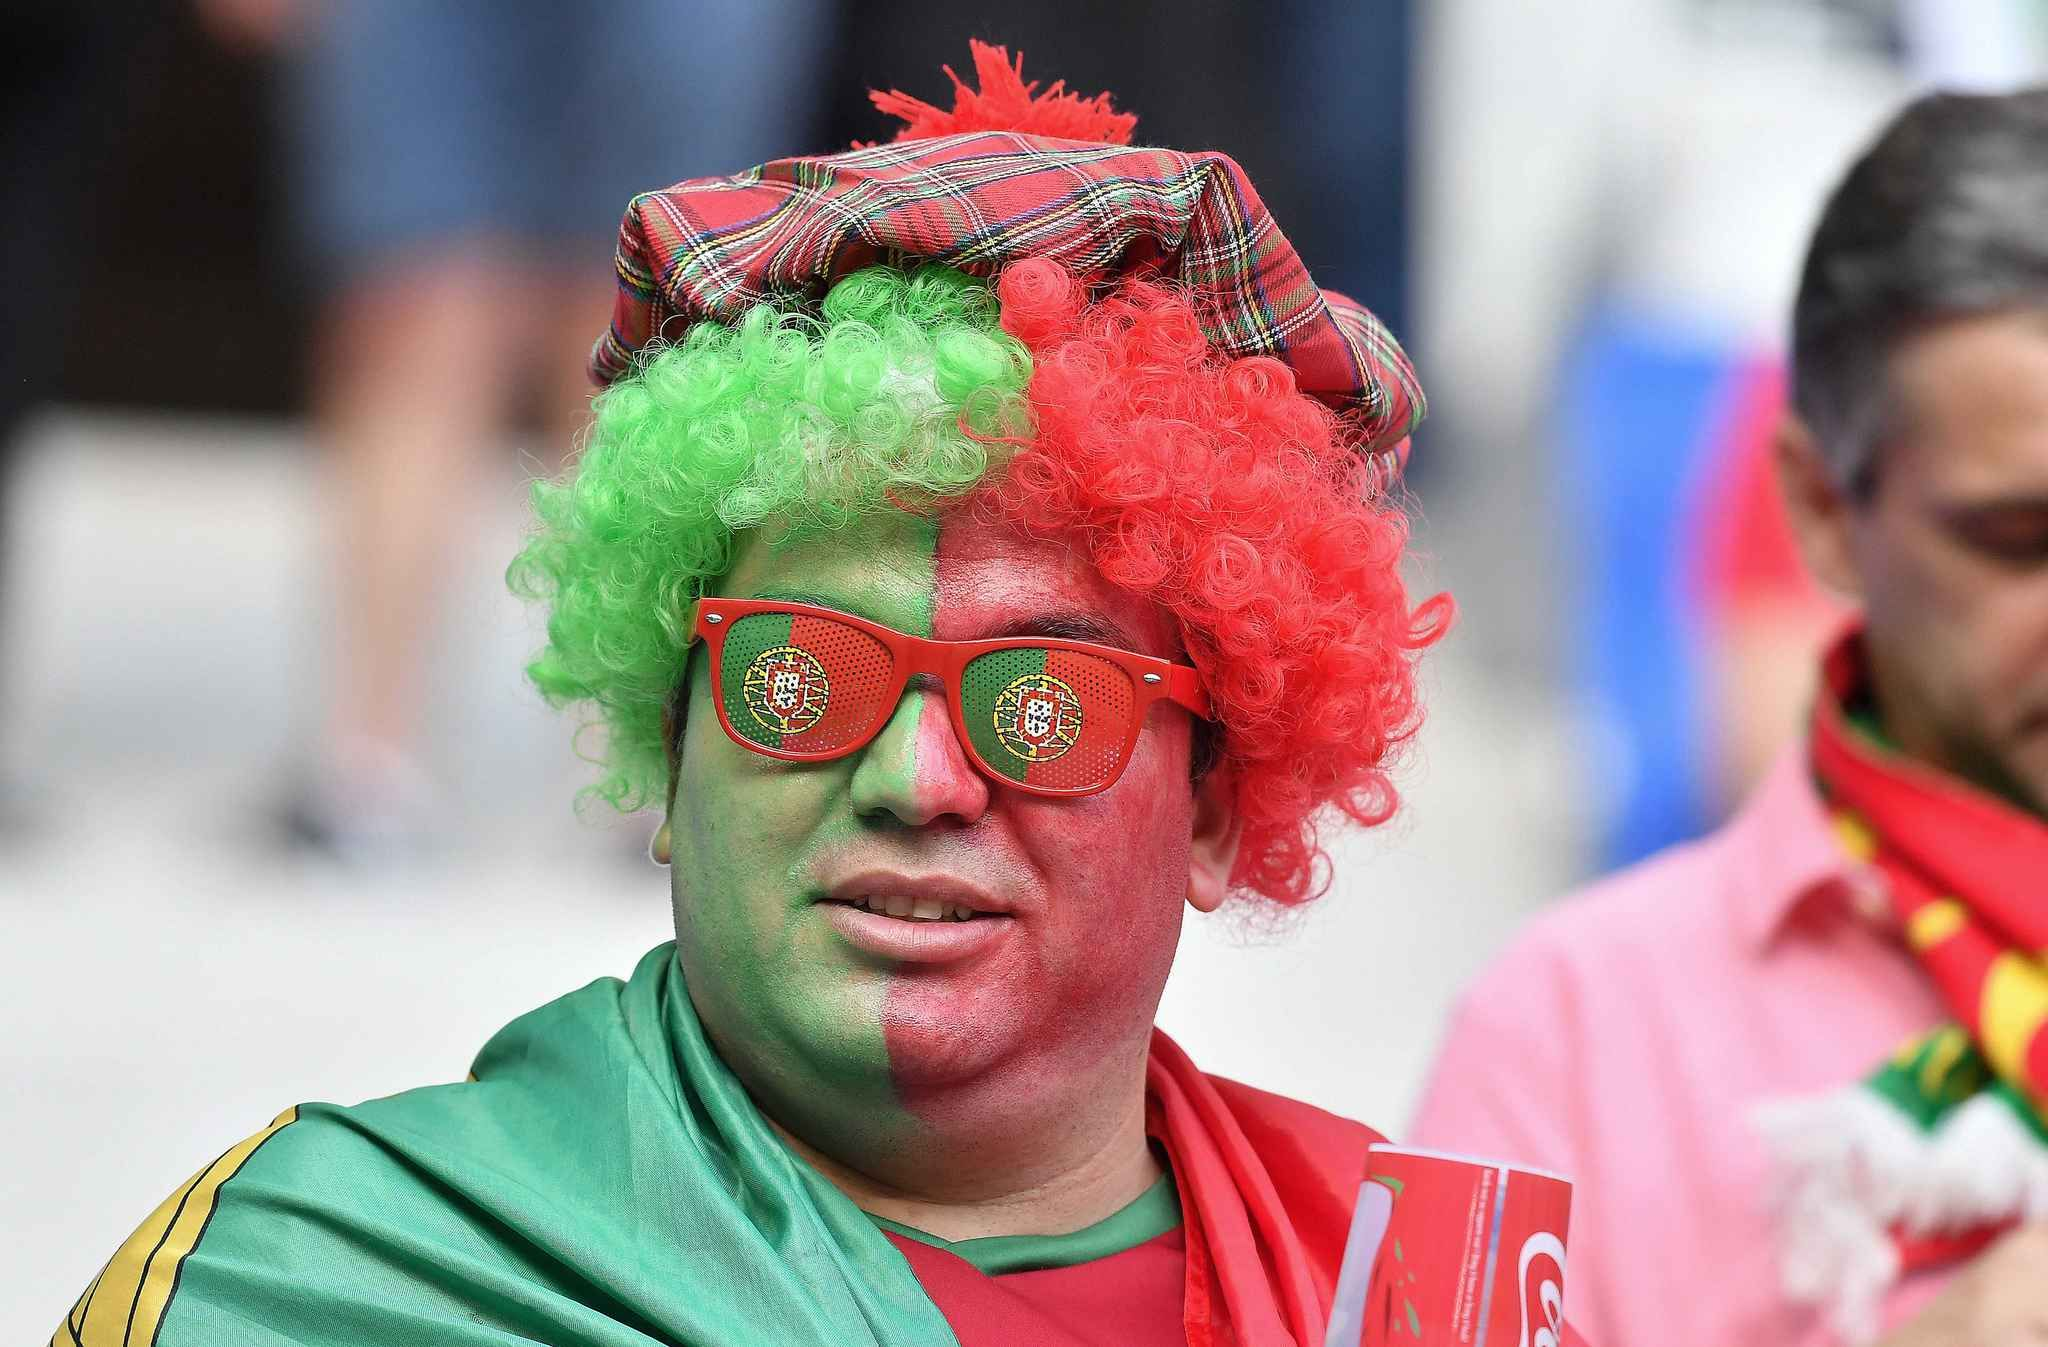 Portugal's Fan attends the Euro 2016 semifinal soccer match between Portugal and Wales at the Grand Stade in Lyon, FRANCE-06/07/2016/Credit:NIVIERE/SIPA/1607071104